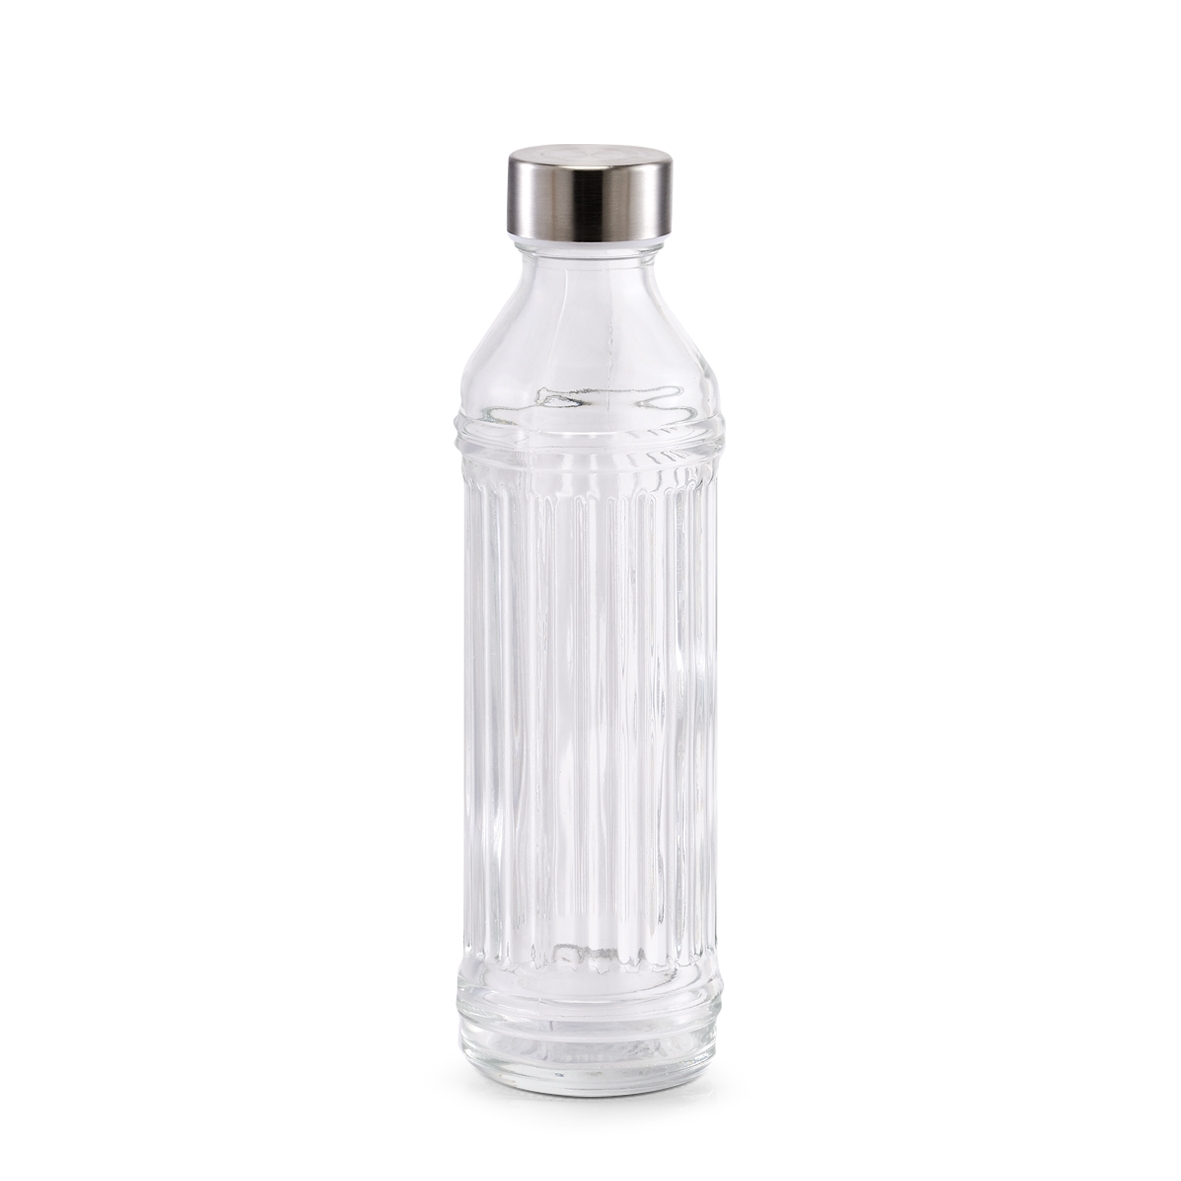 Sticla pentru apa Visual Transparent, 500 ml, Ø7xH24 cm imagine